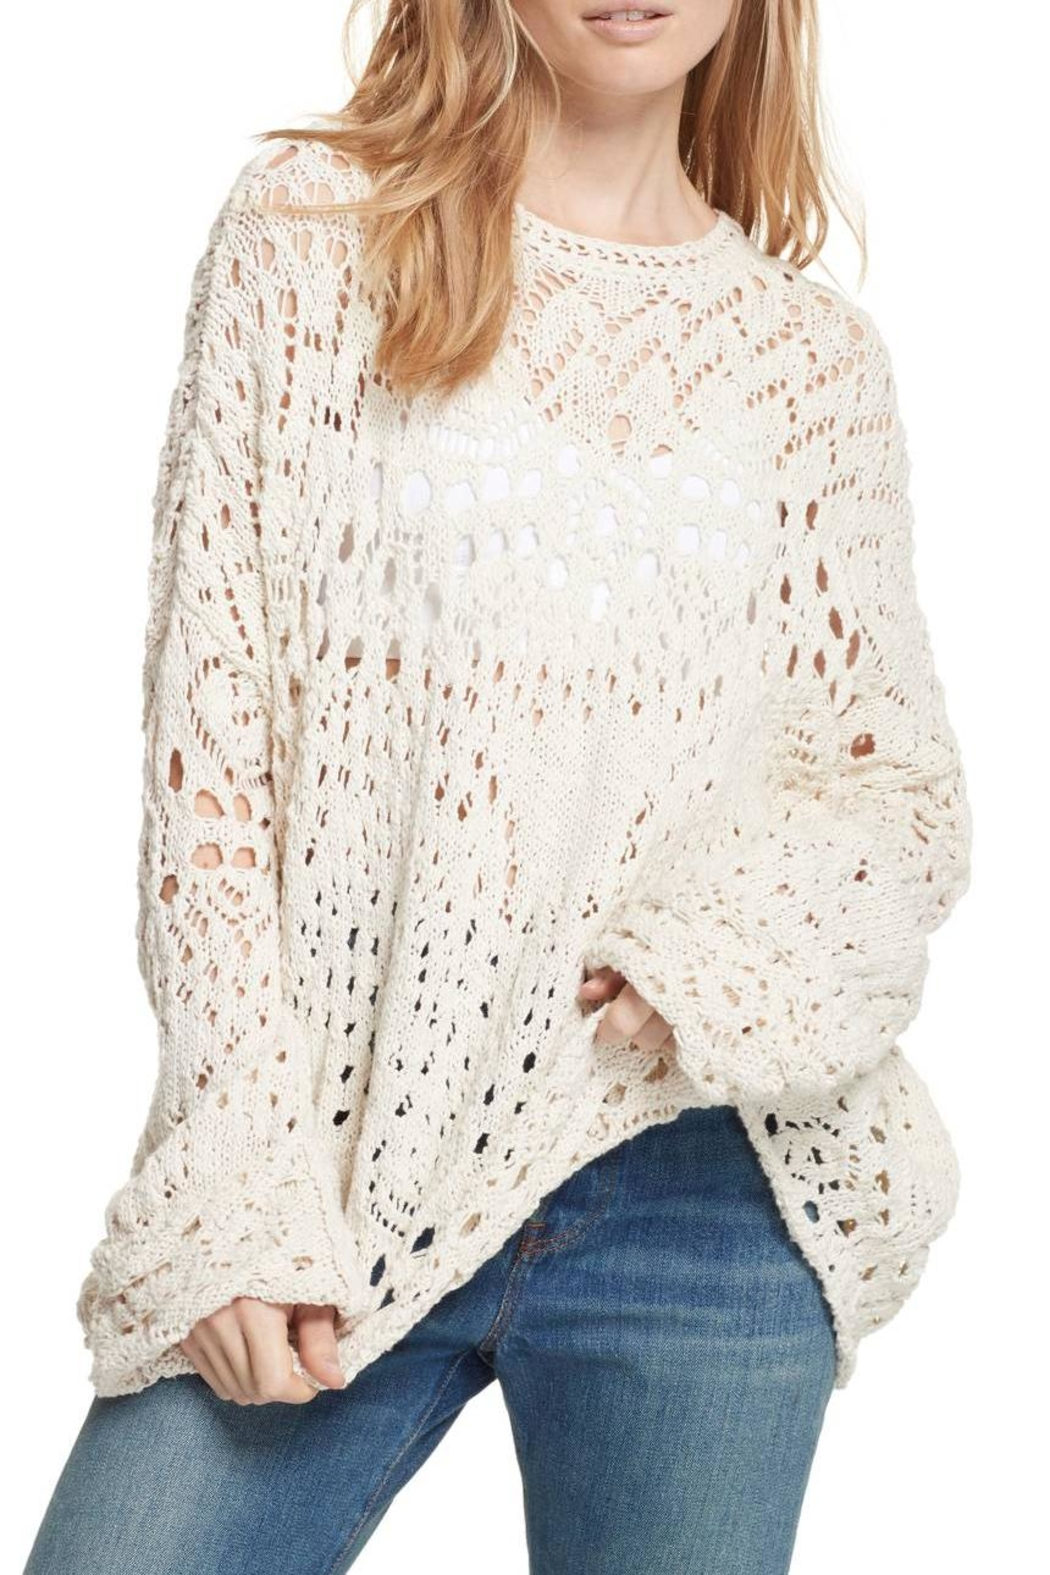 Free People Traveling Lace Sweater - Main Image